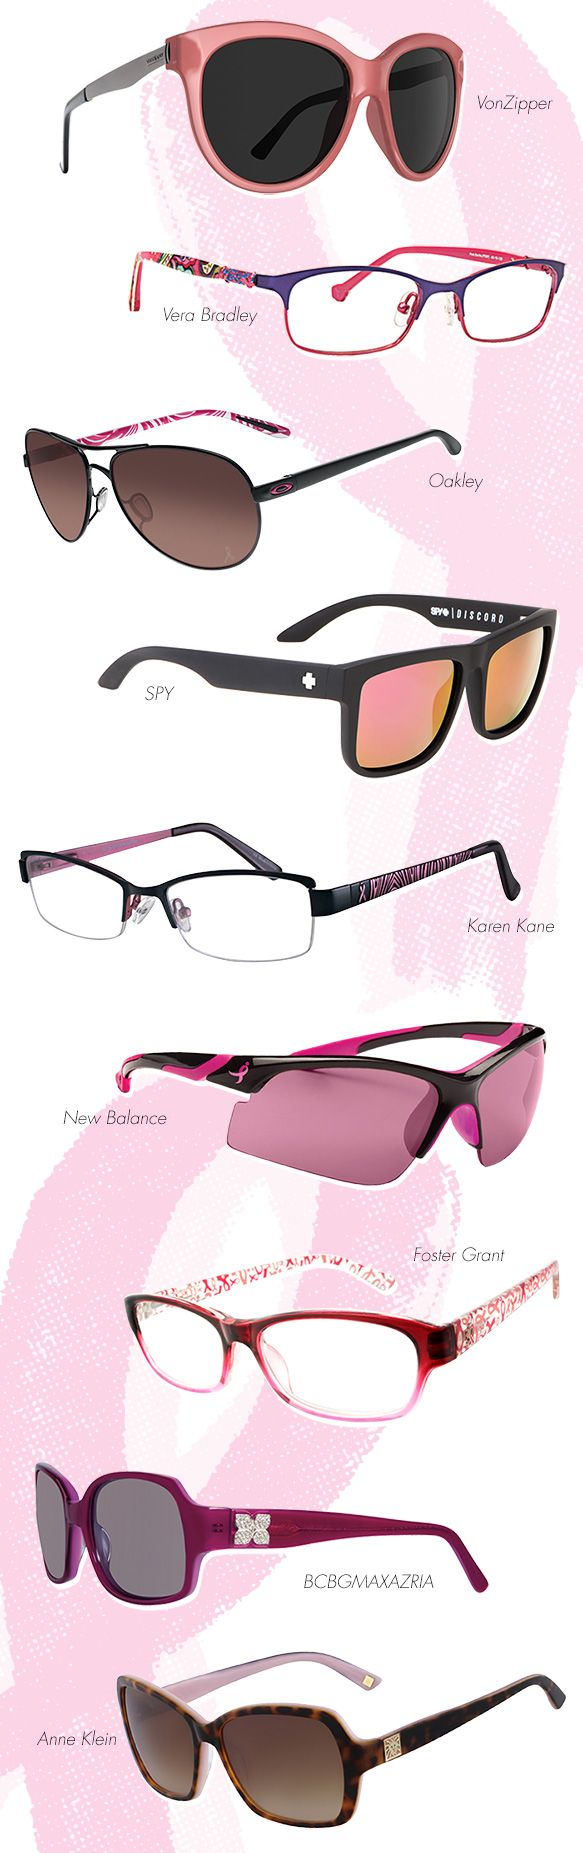 A Pink Perspective: Saving the Ta-Tas with Specs + Sunnies: http://eyecessorizeblog.com/2014/10/pink-perspective-saving-ta-tas-specs-sunnies/